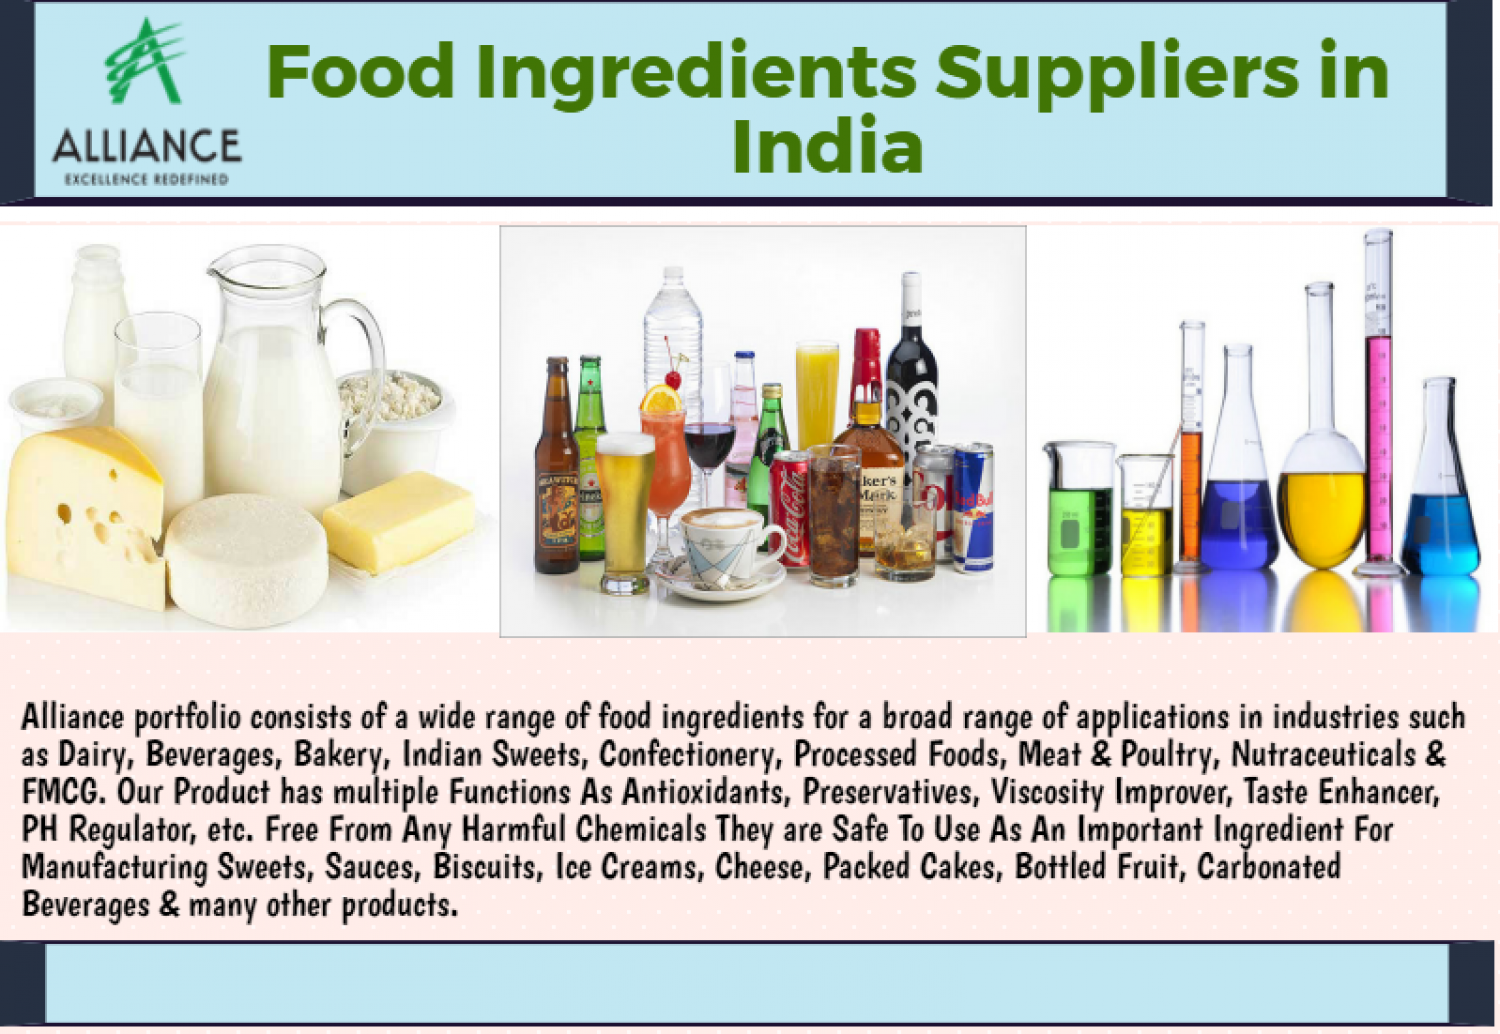 Food Ingredients Suppliers in India  Infographic